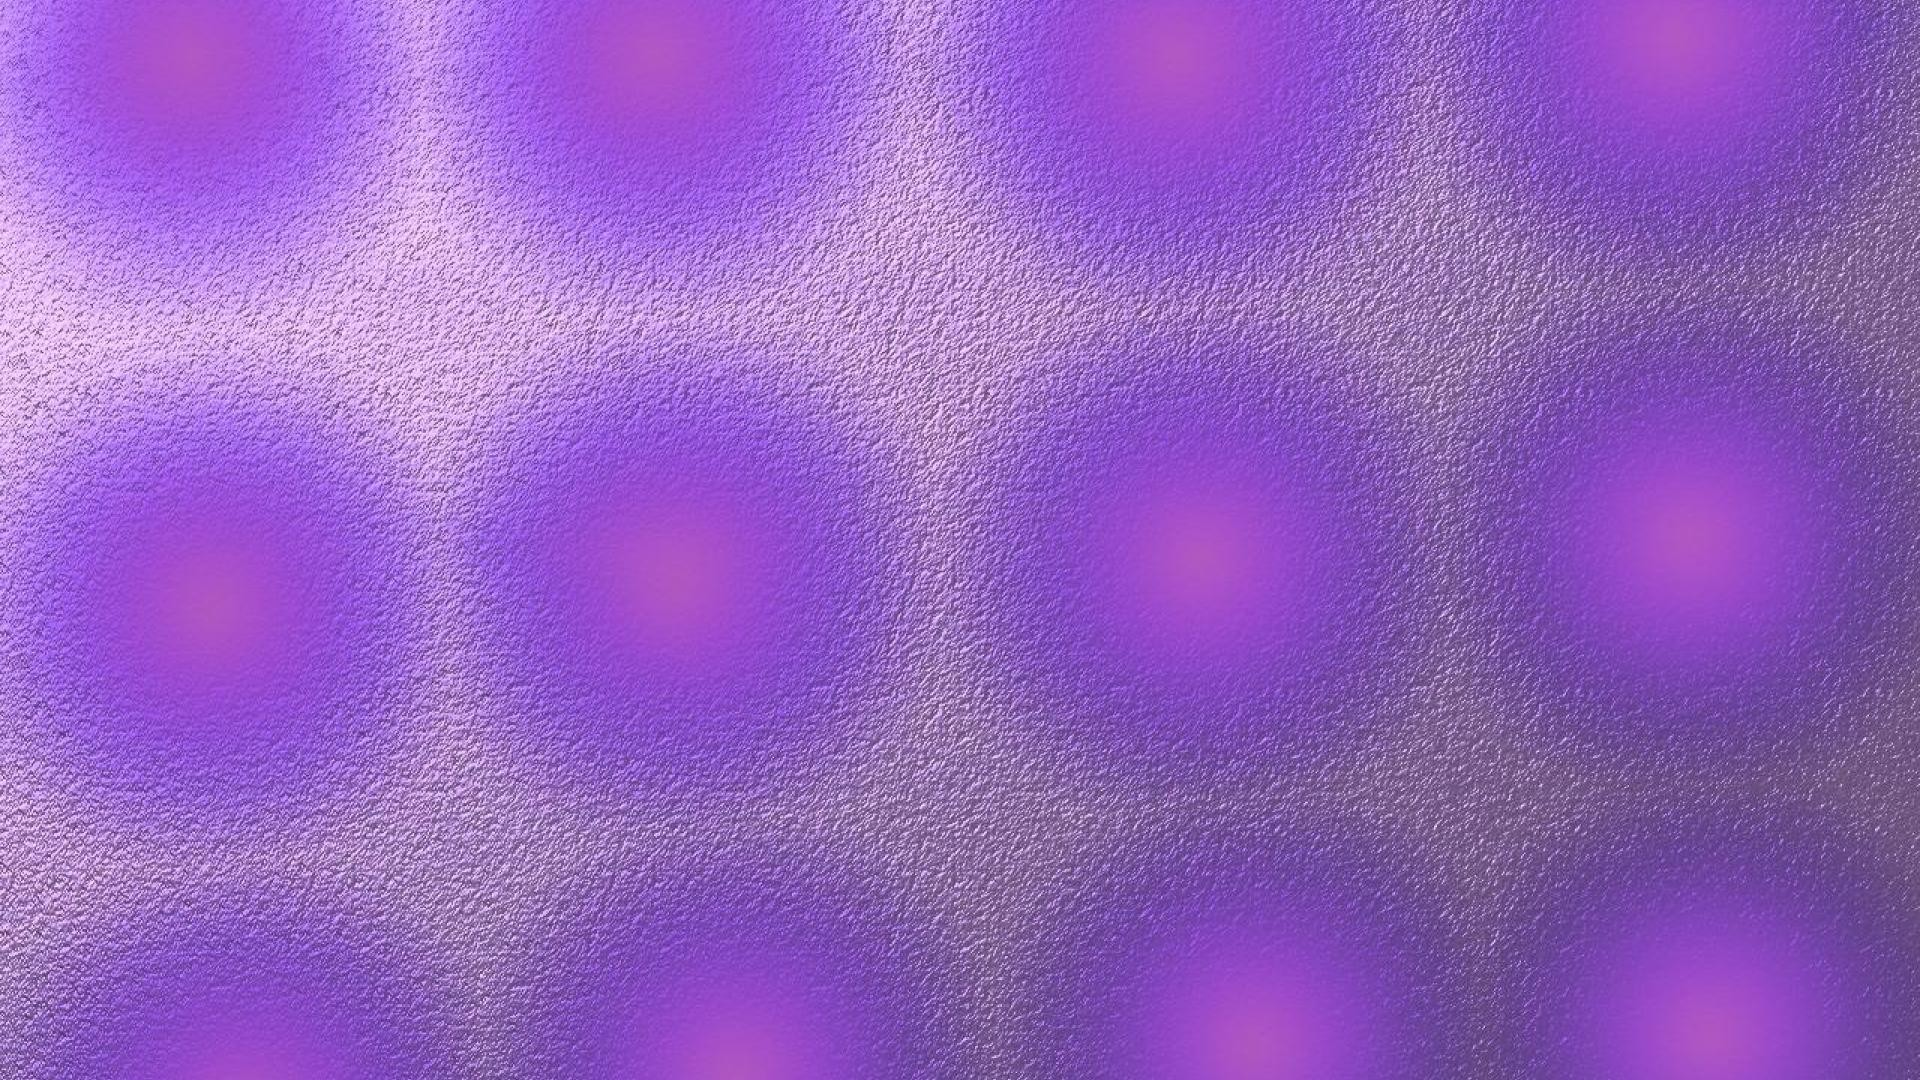 GRADIENT IN SILVER AND PURPLE WALLPAPER – (#7579) – HD Wallpapers .